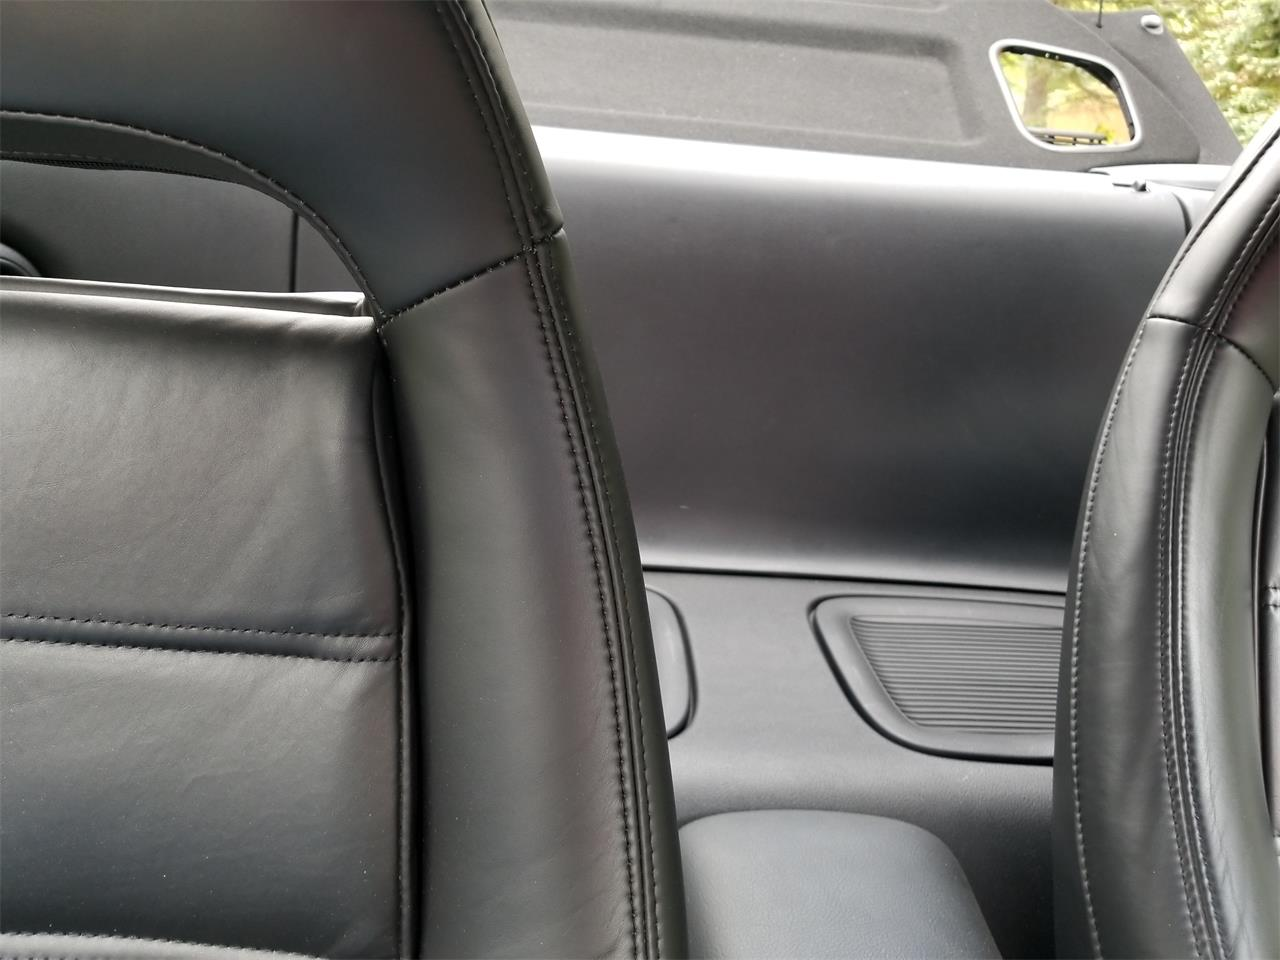 Large Picture of 1993 Mazda RX-7 located in Ohio - $54,000.00 Offered by a Private Seller - NICV